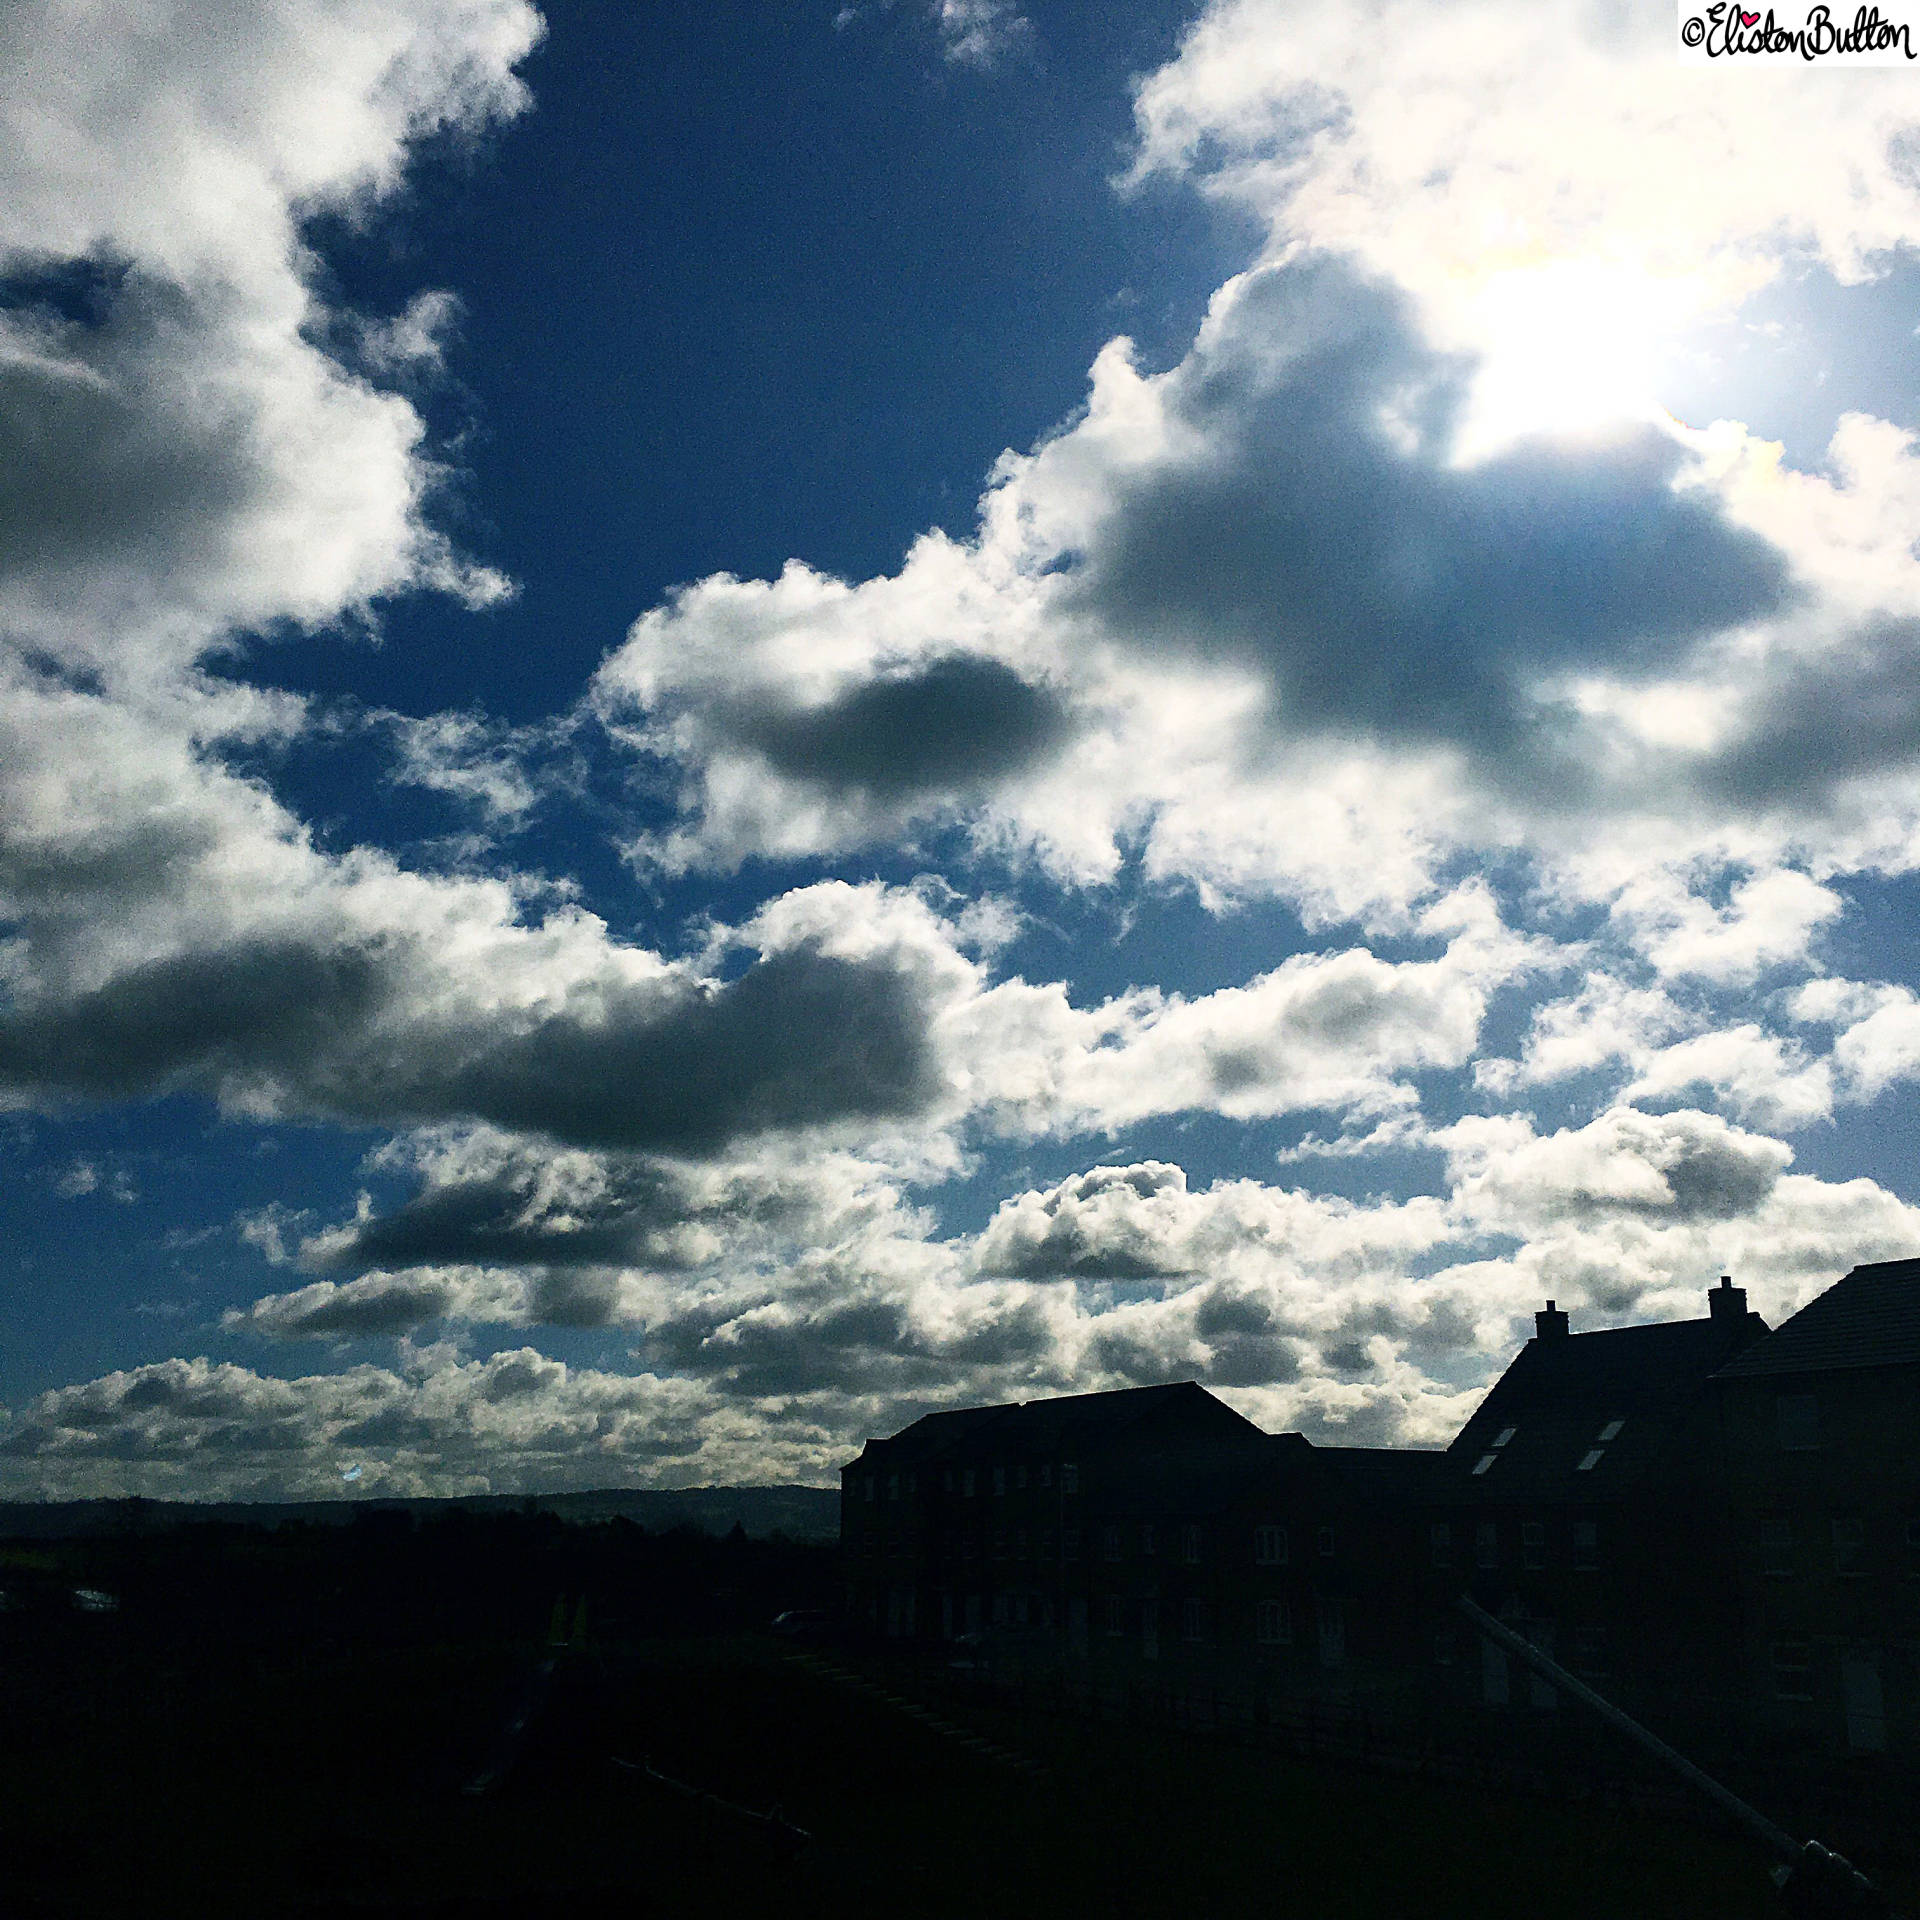 Day 04 - The Weather - Sun and Clouds - Photo-a-Day – March 2016 at www.elistonbutton.com - Eliston Button - That Crafty Kid – Art, Design, Craft & Adventure.